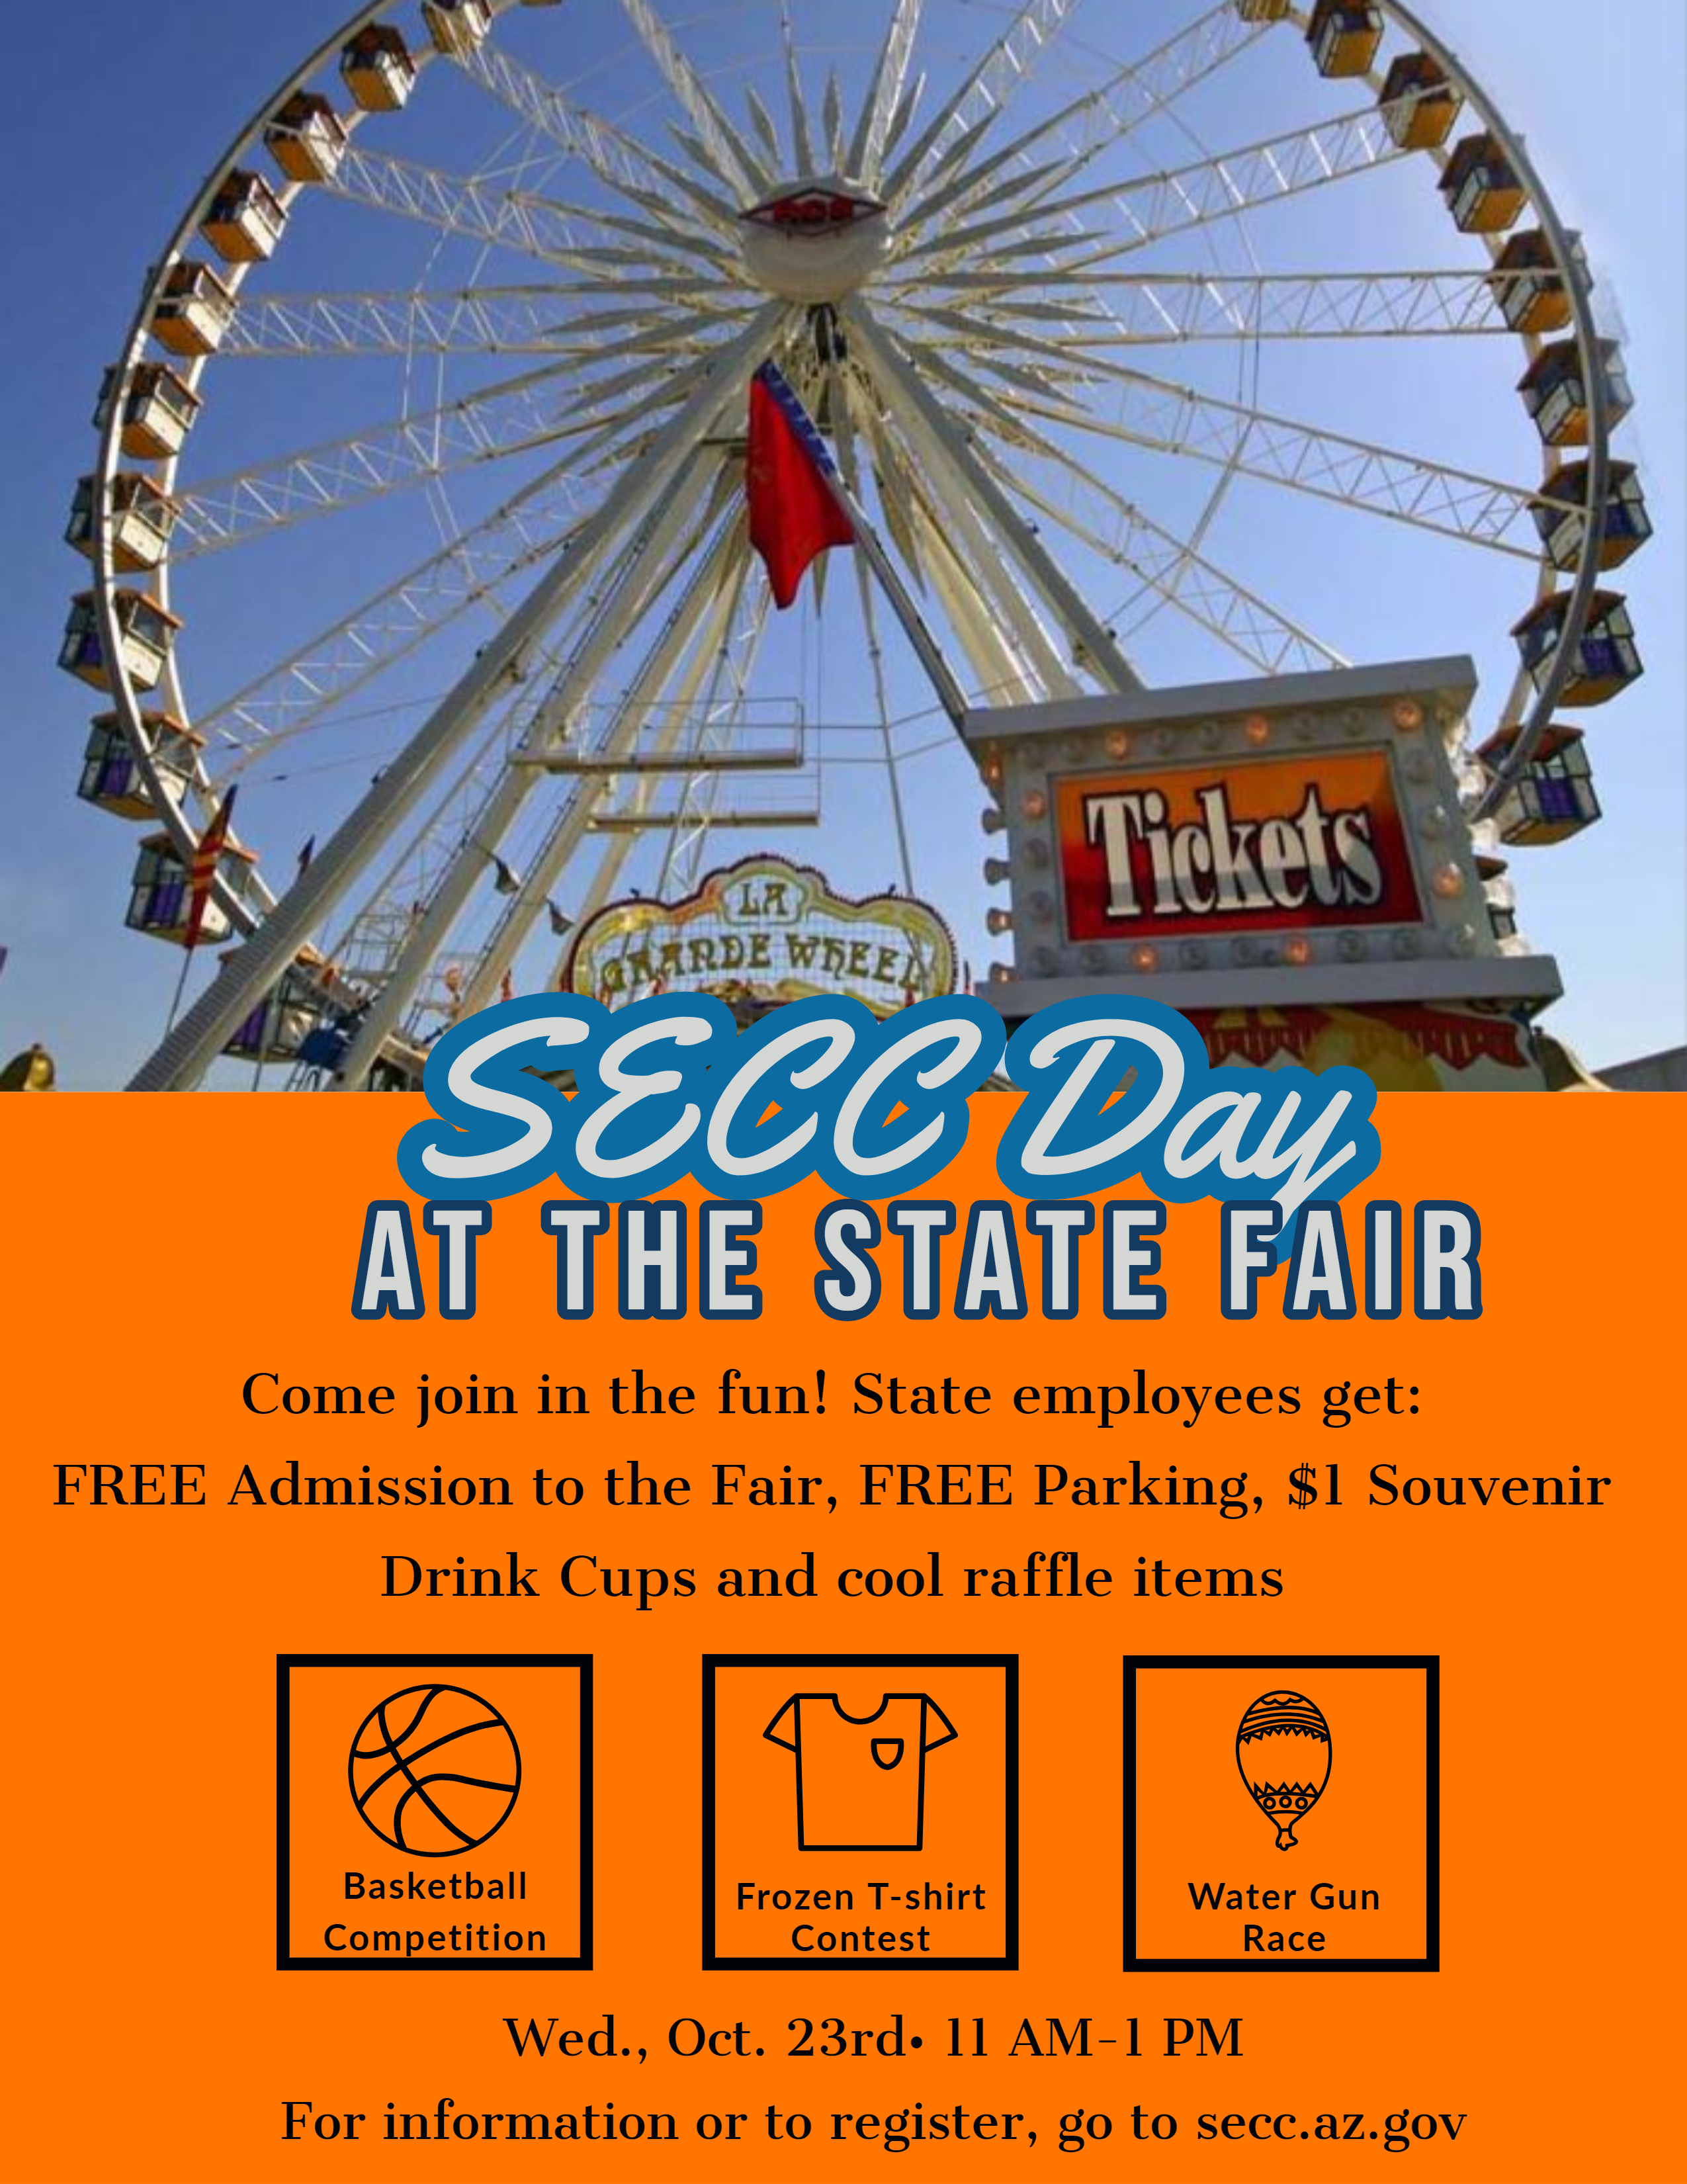 SECC Day at the State Fair